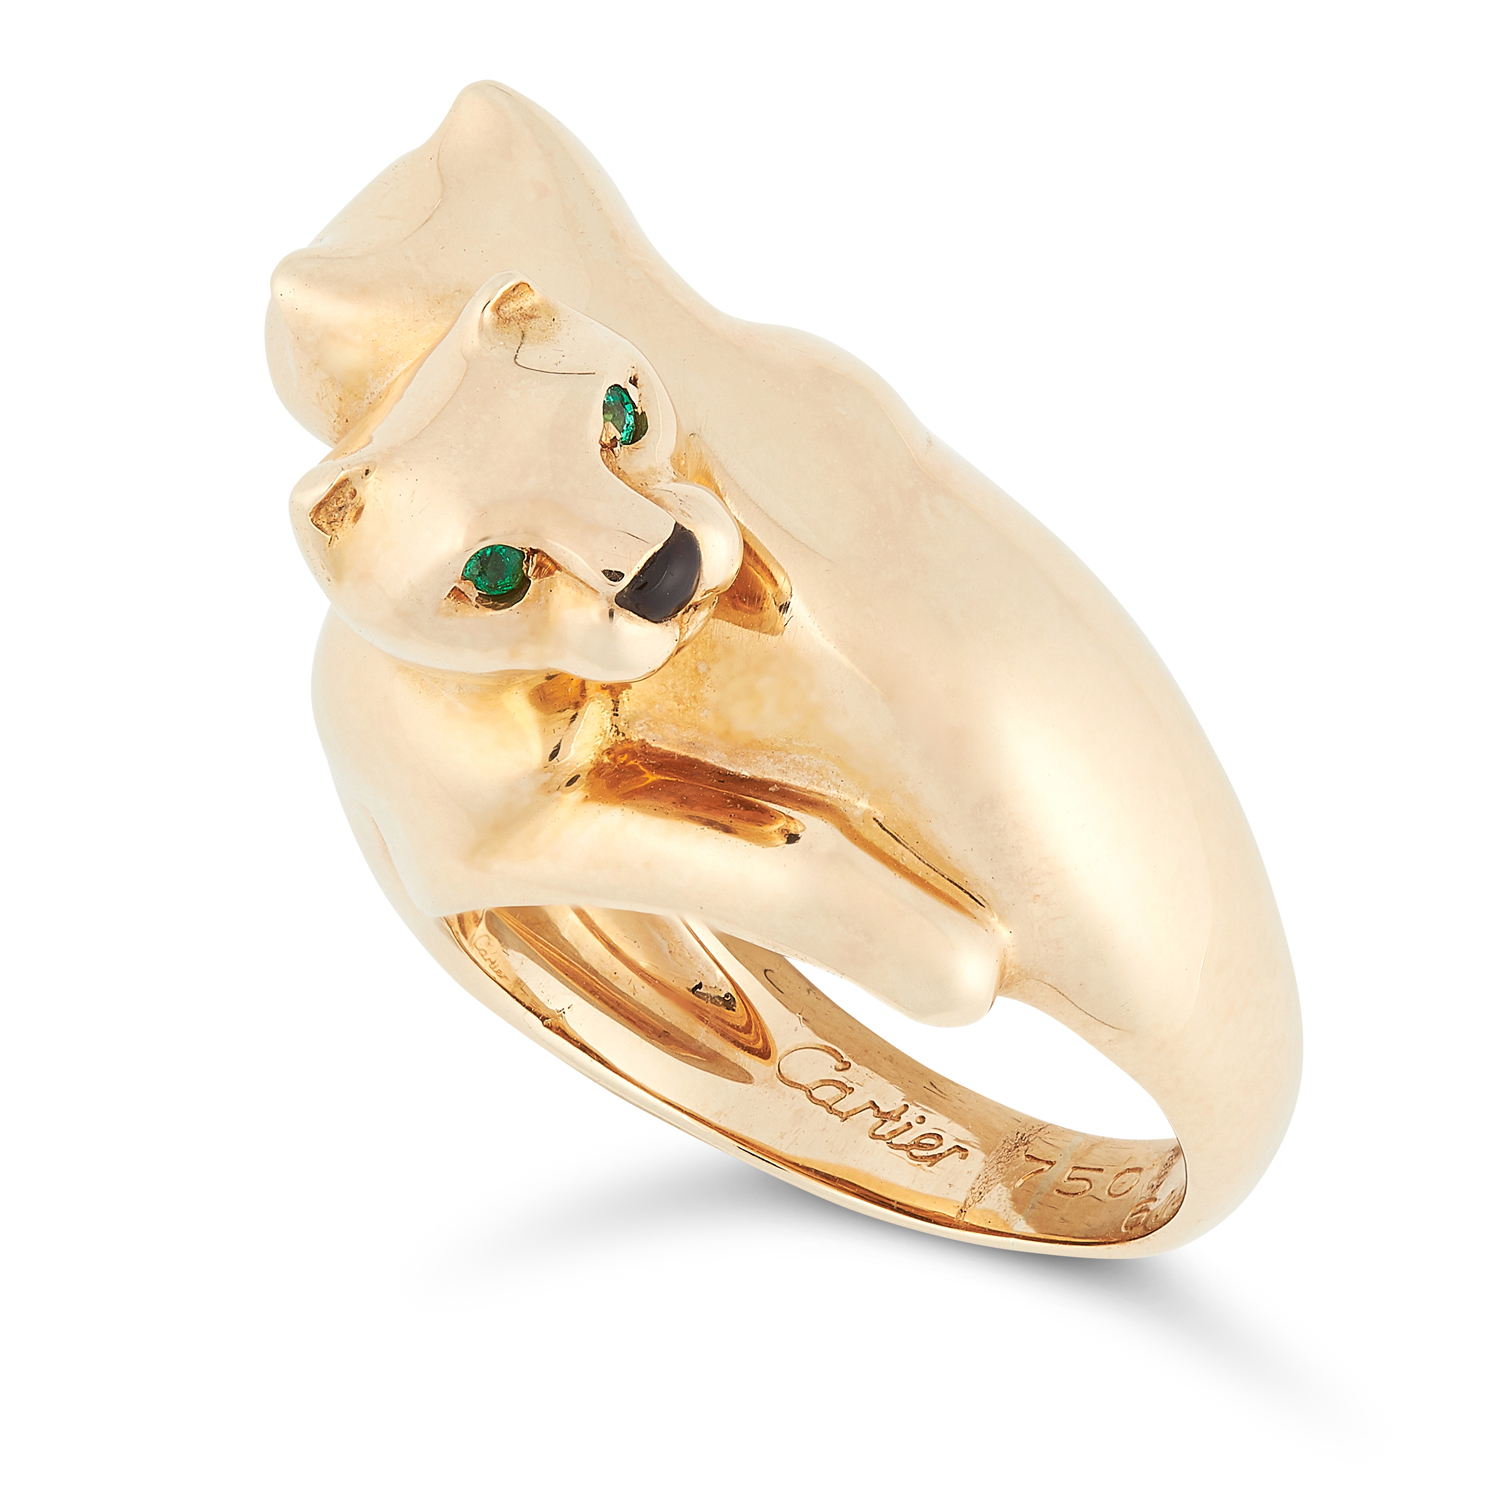 AN EMERALD AND ONYX PANTHERE RING, CARTIER in 18ct yellow gold, designed as two interlocking